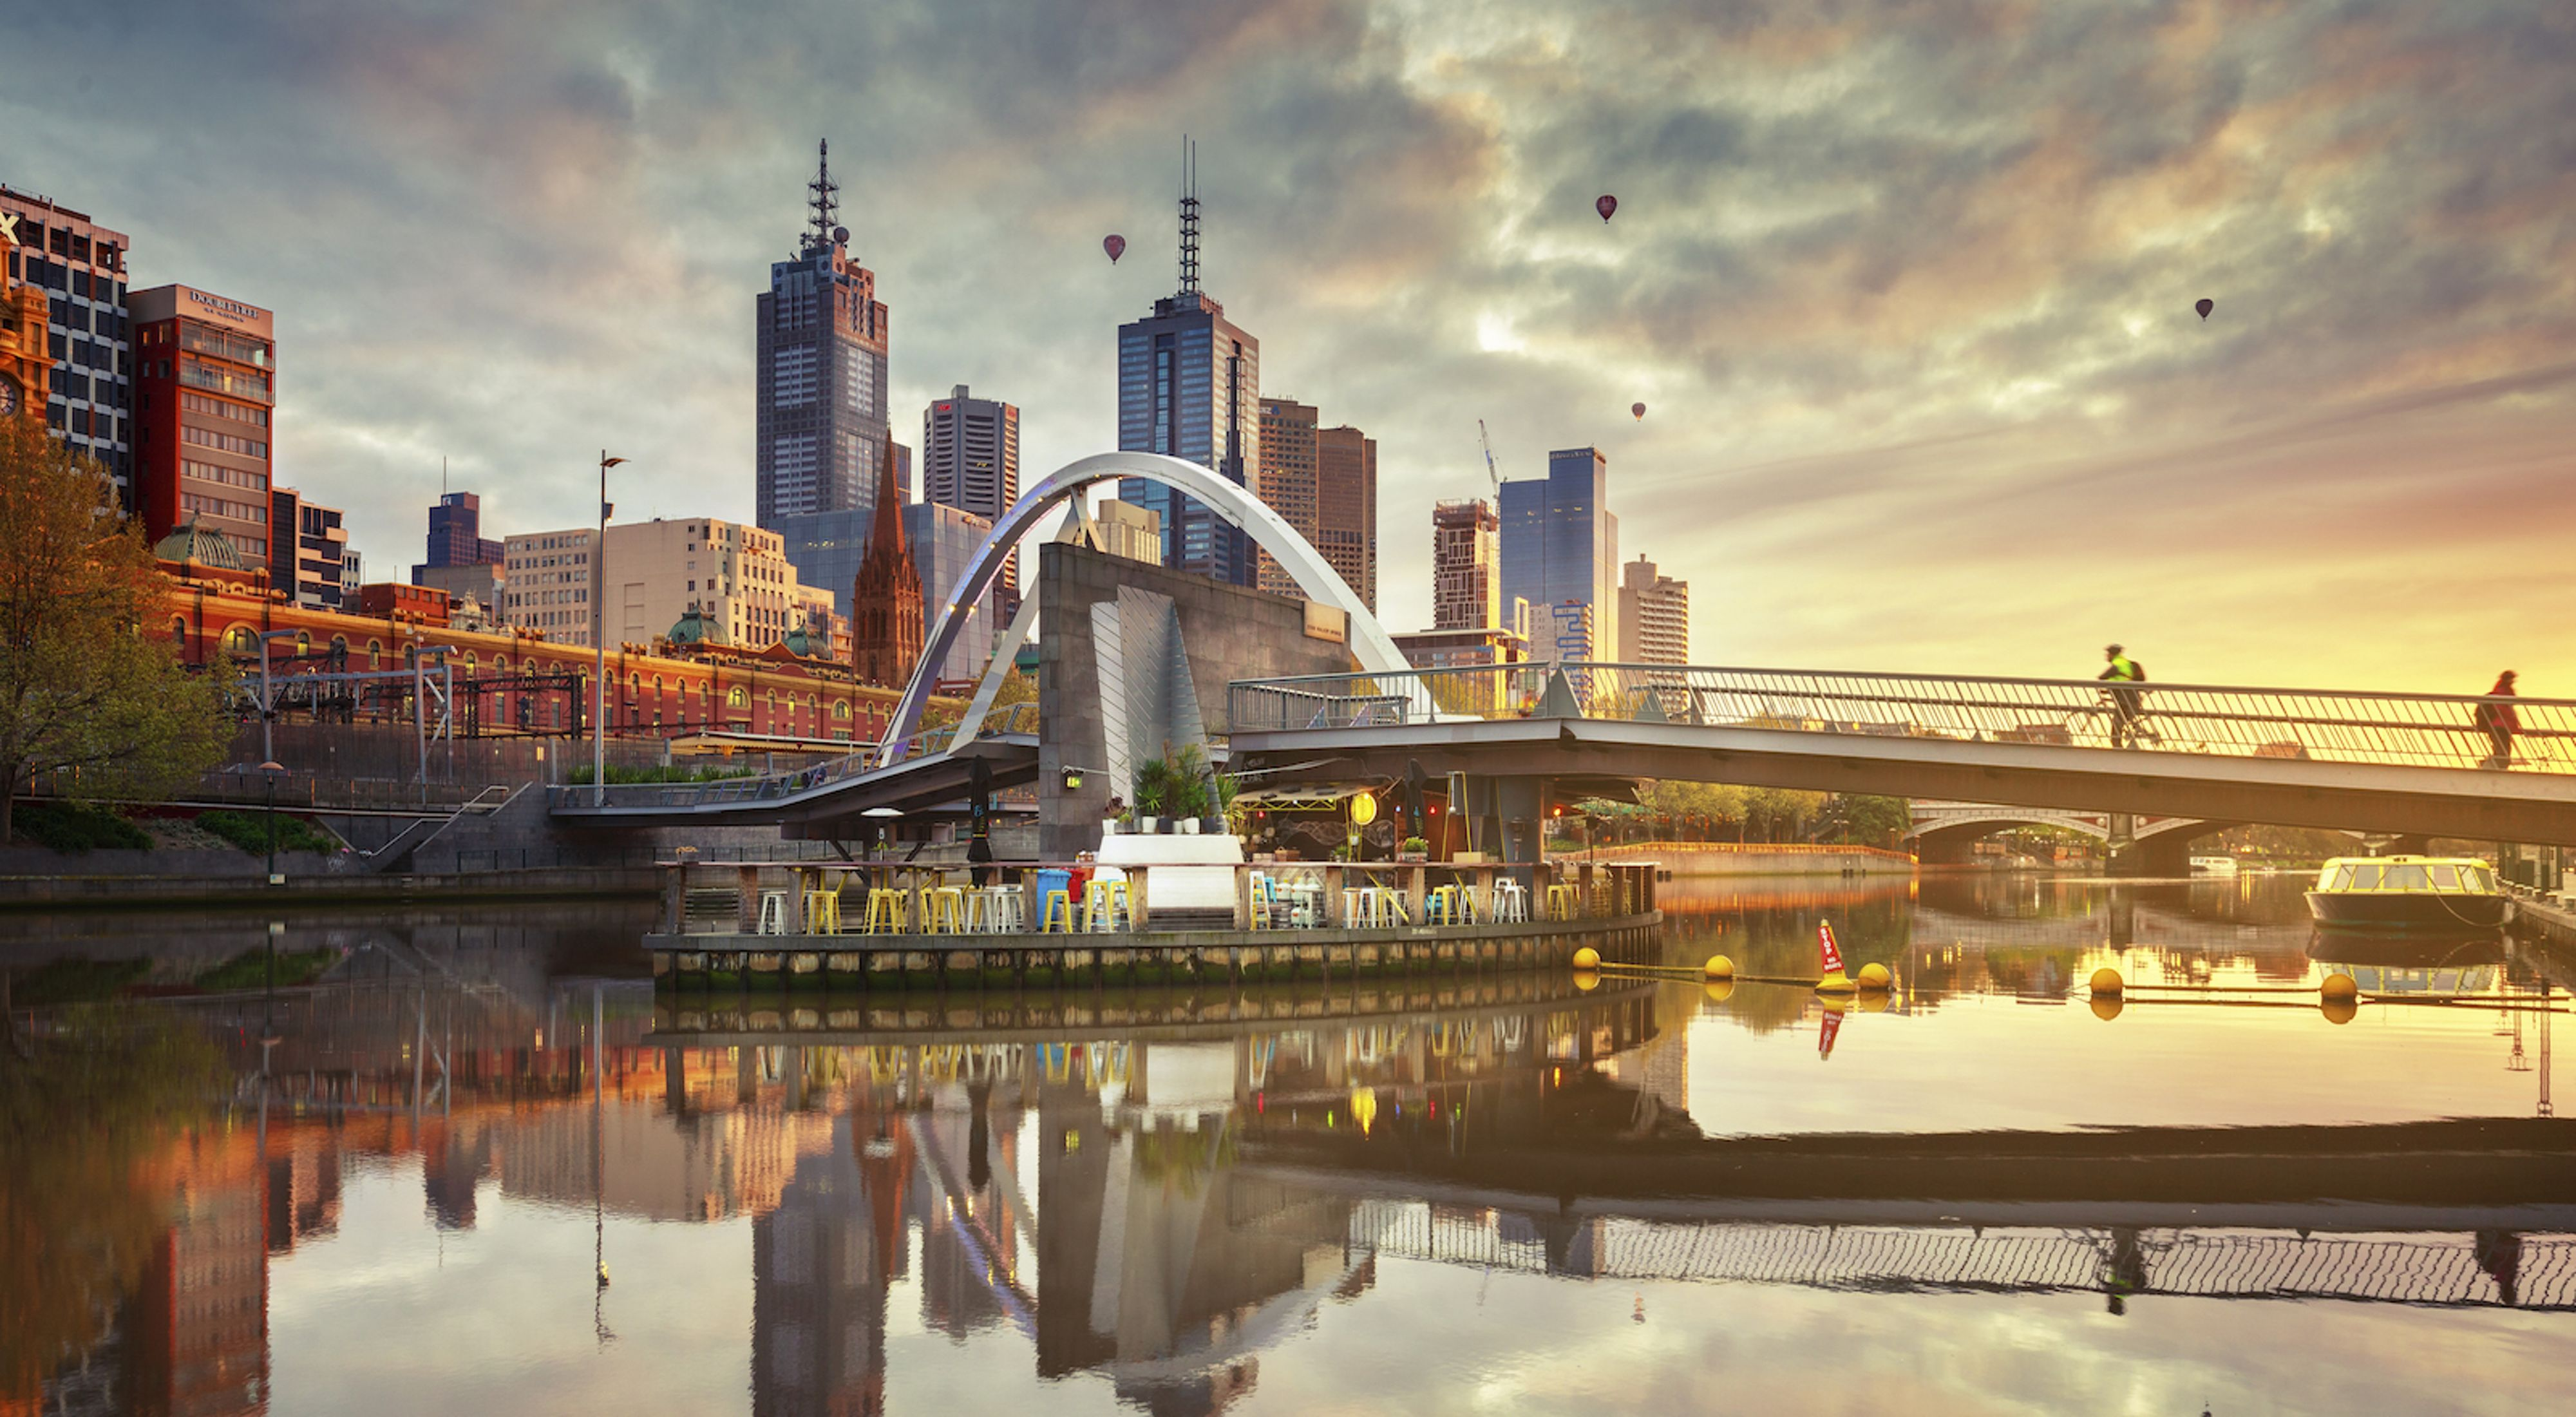 Melbourne is part of the 100 Resilient Cities initiative pioneered by the Rockefeller Foundation